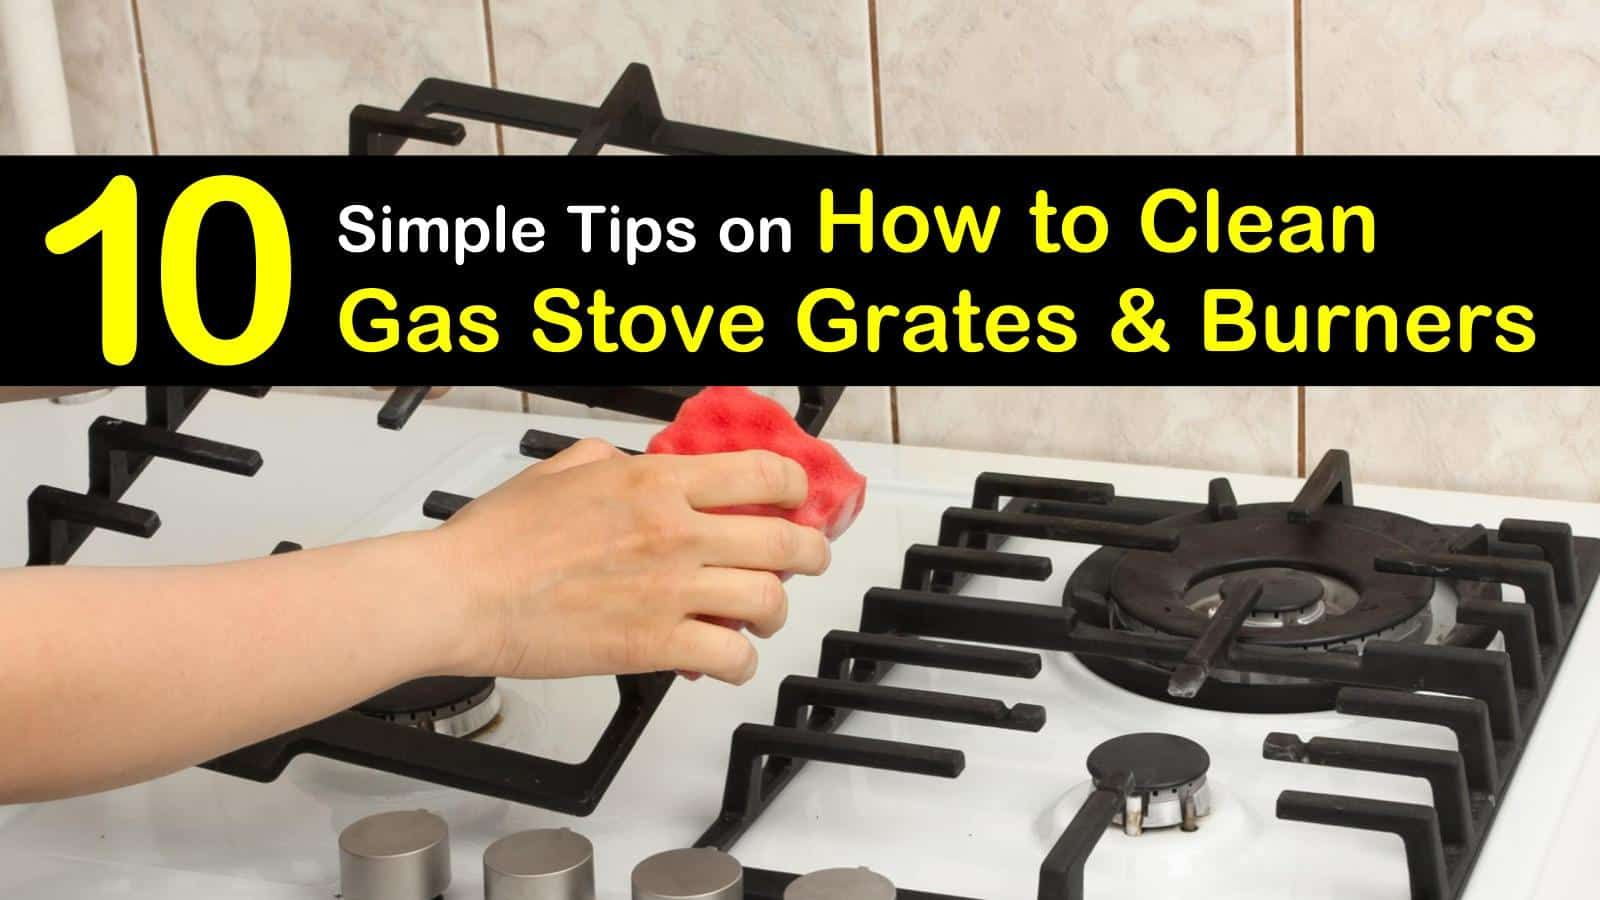 10 Simple Ways To Clean Gas Stove